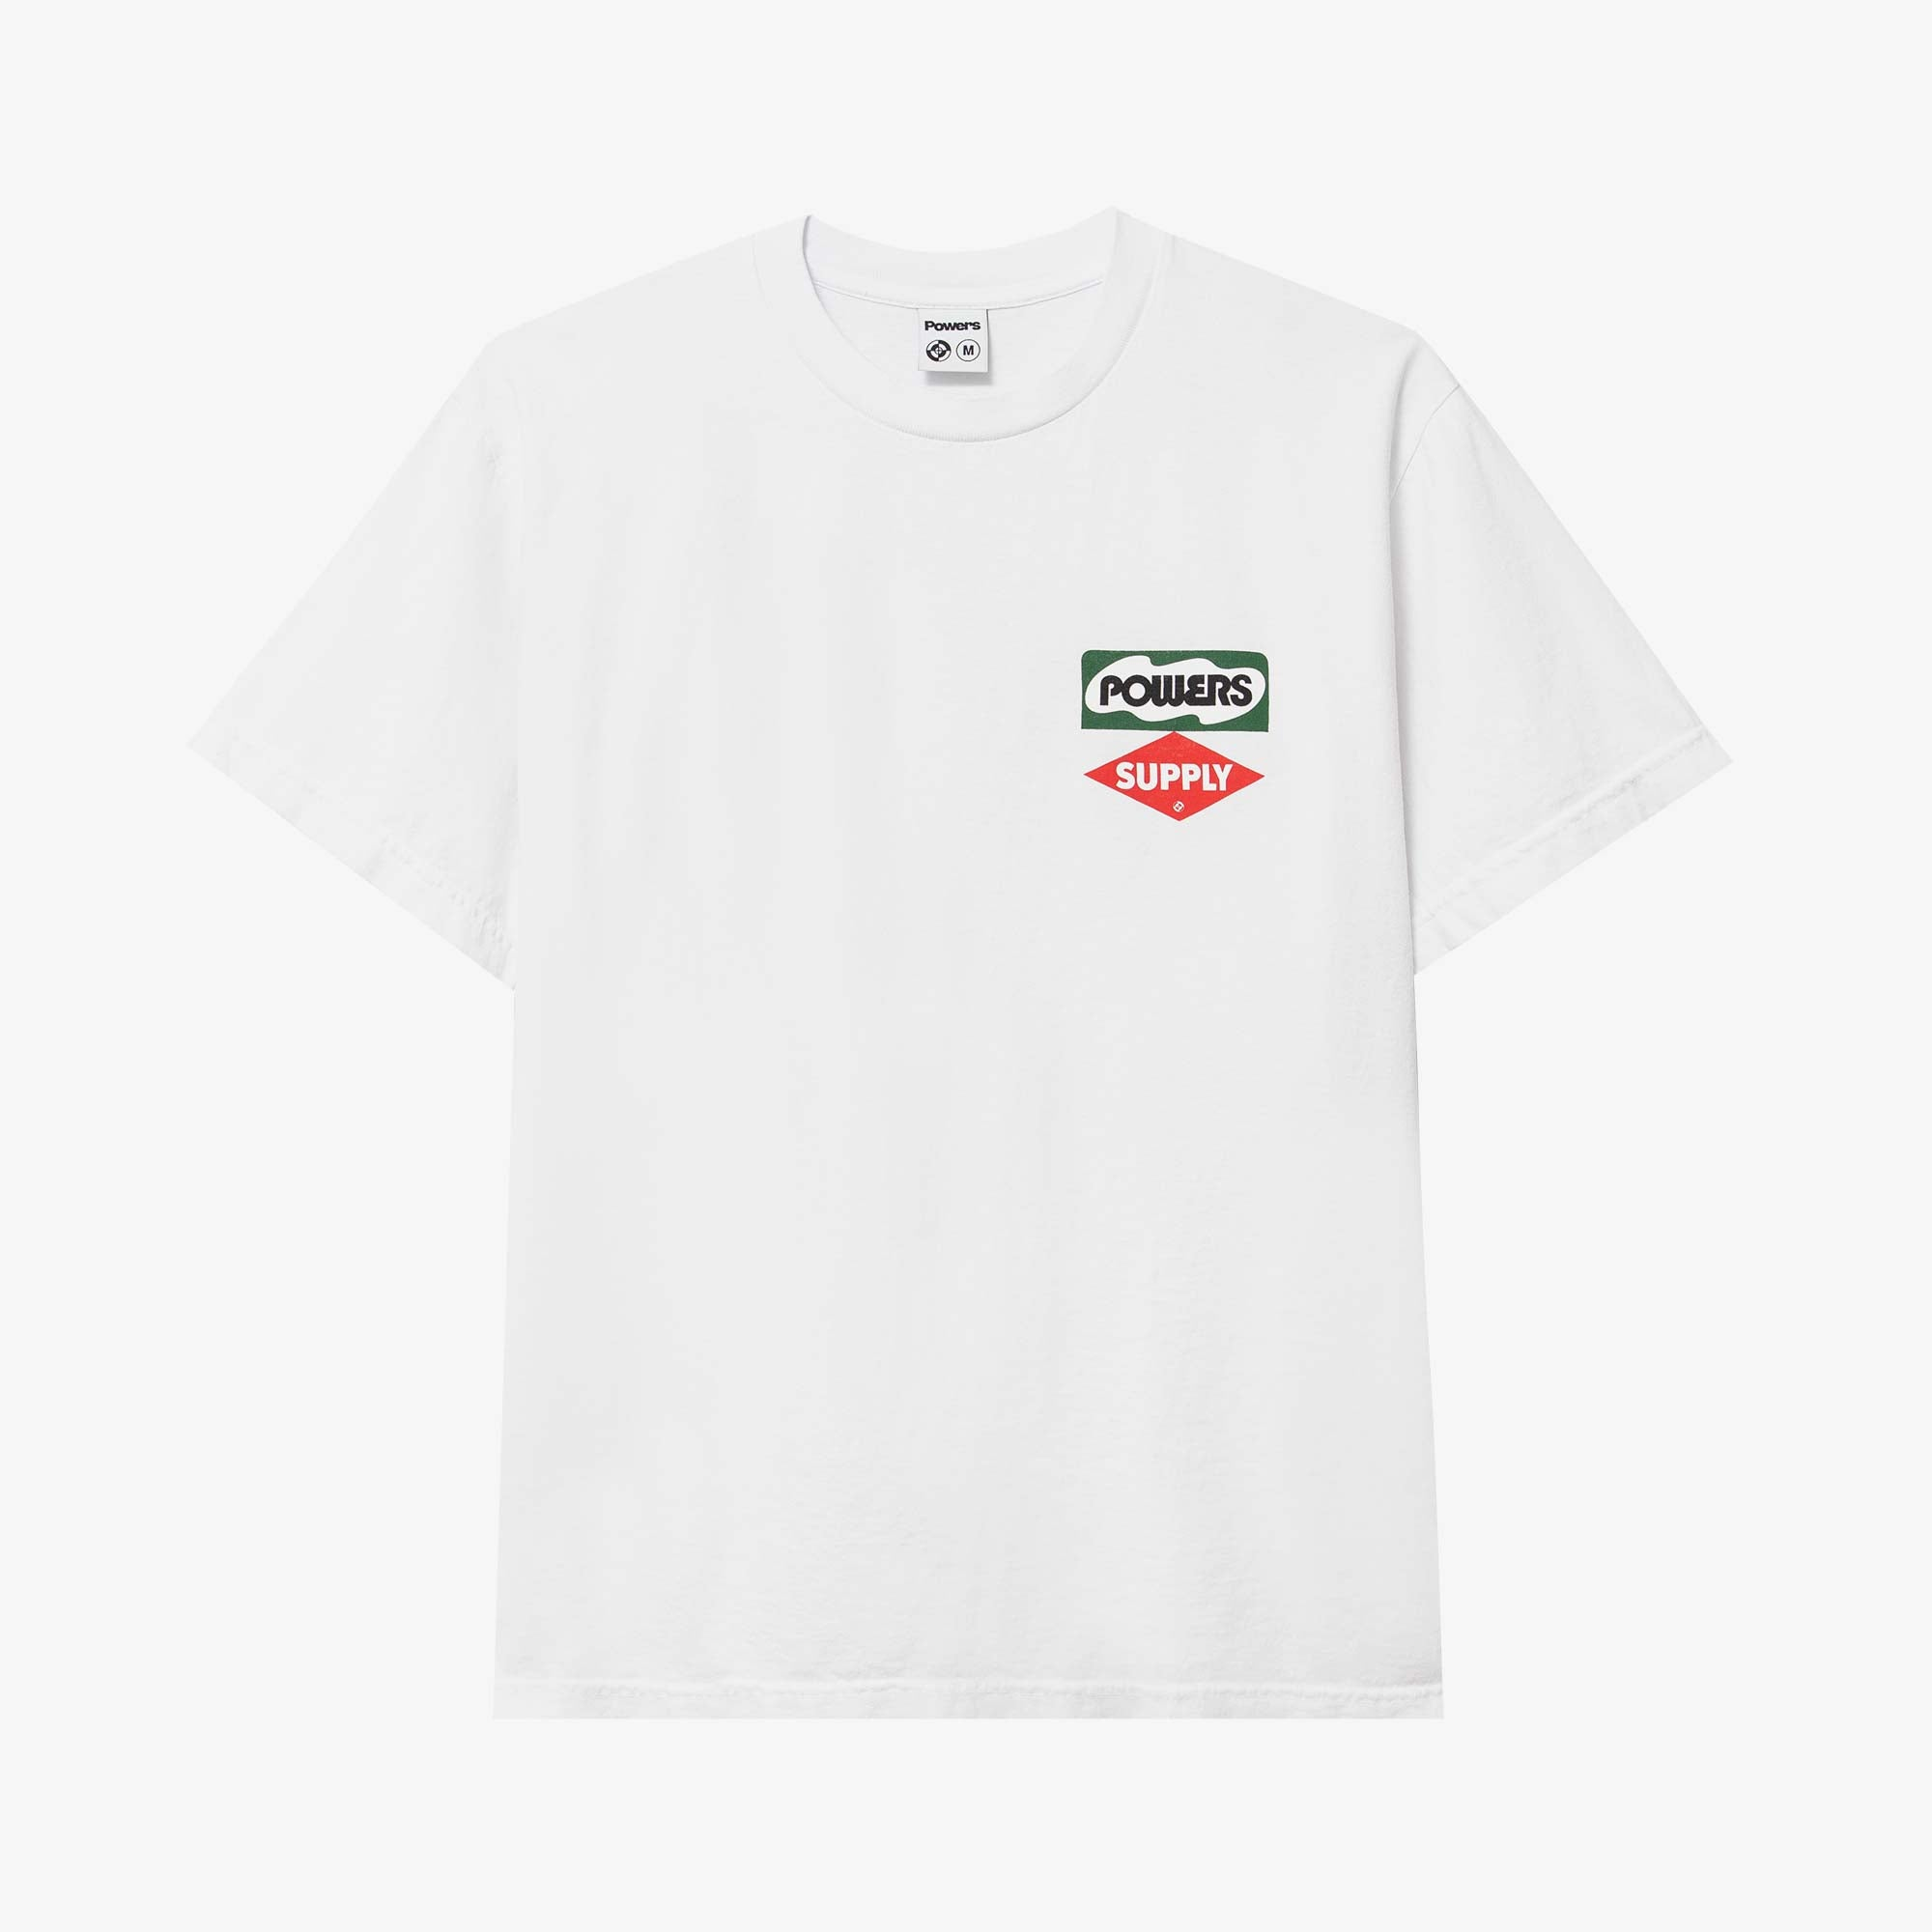 Powers Supply Vermin SS Tee - White 2